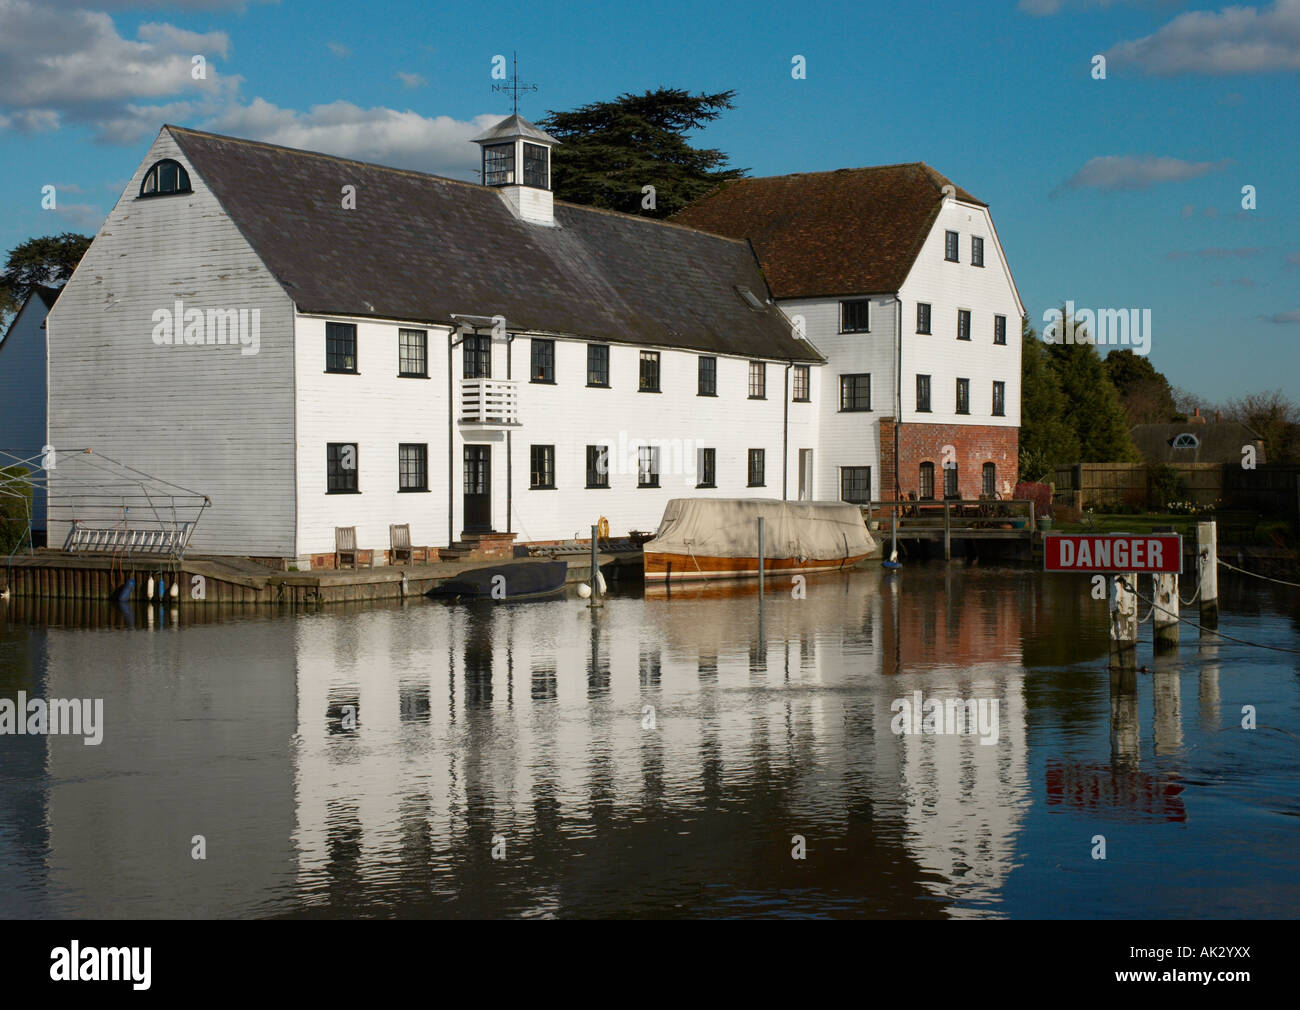 This is the former watermill now Apartments at Mill End, near Hambleden, Buckinghamshire, England, UK - Stock Image